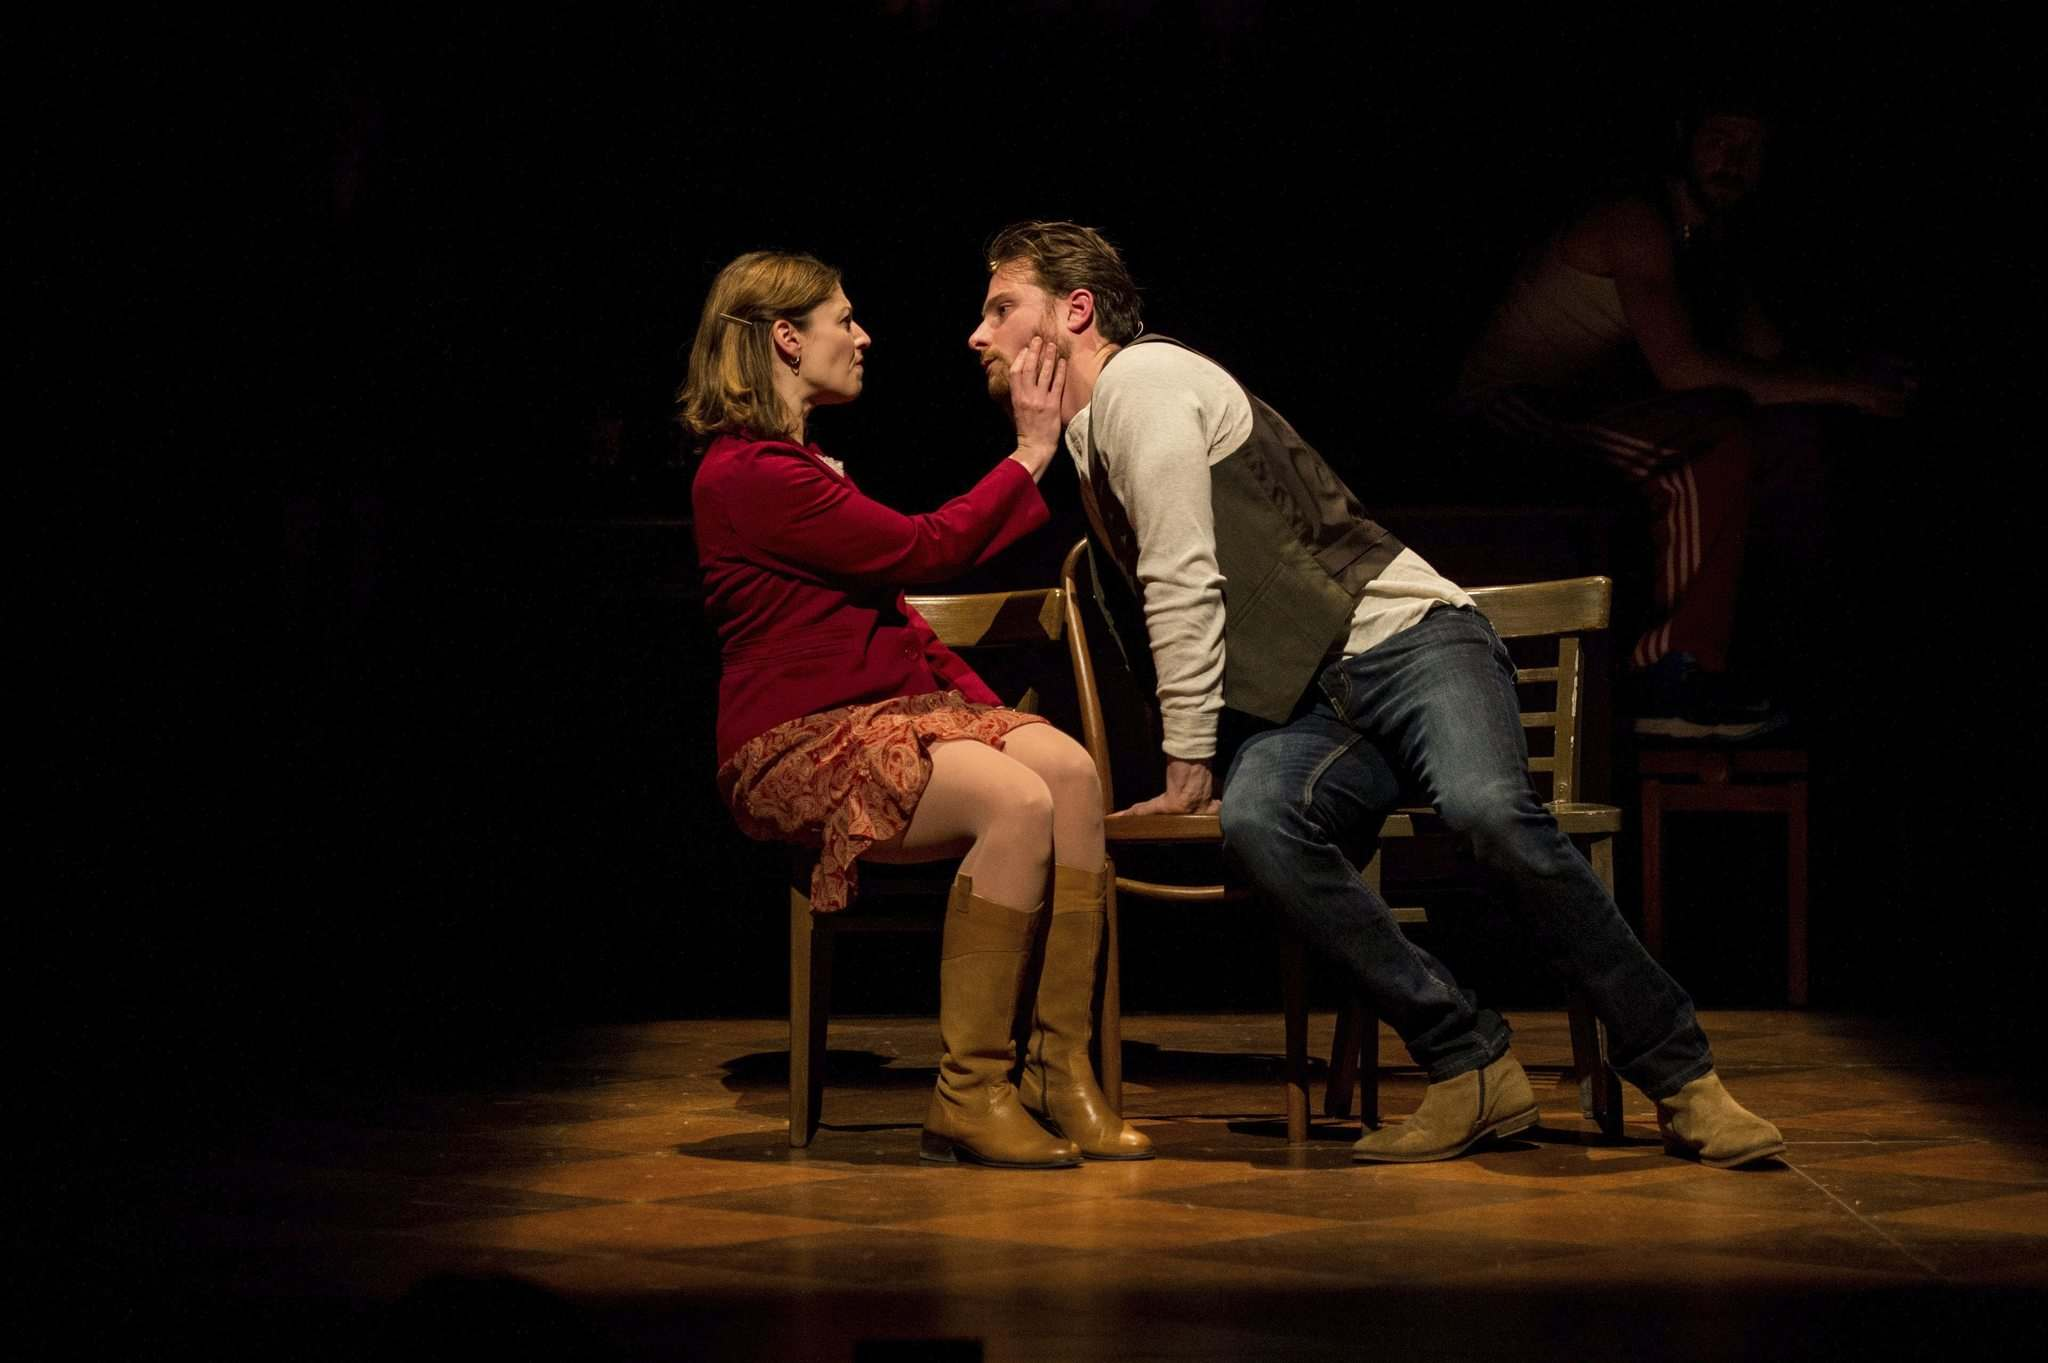 Jeremy Walmsely (right) portrays Guy, a vacuum repairman/street musician and Amanda LeBlanc plays Girl, a Czech immigrant. (Dylan Hewlett Photo)</p>